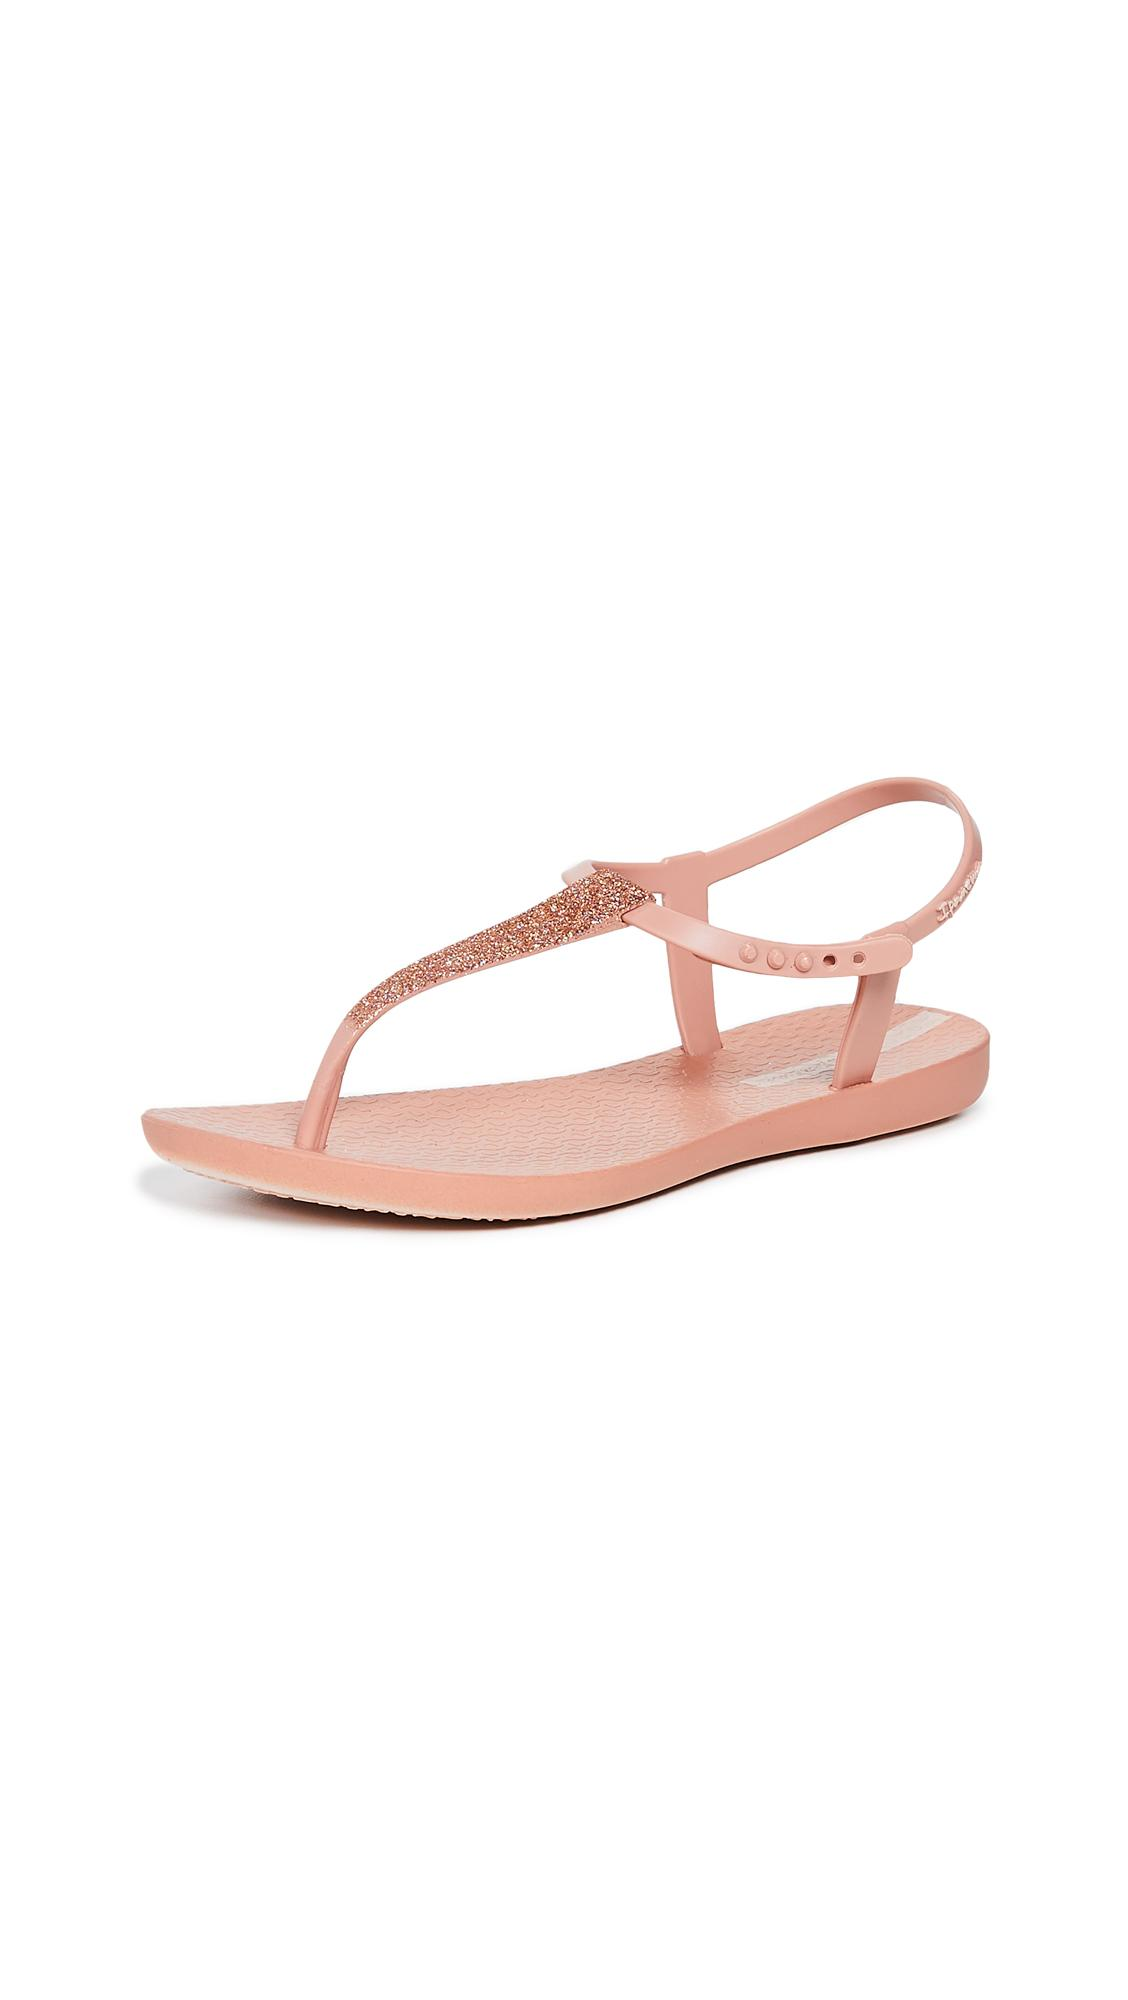 875cac0bf2fbd Ipanema Shimmer T-strap Sandals in Pink - Lyst